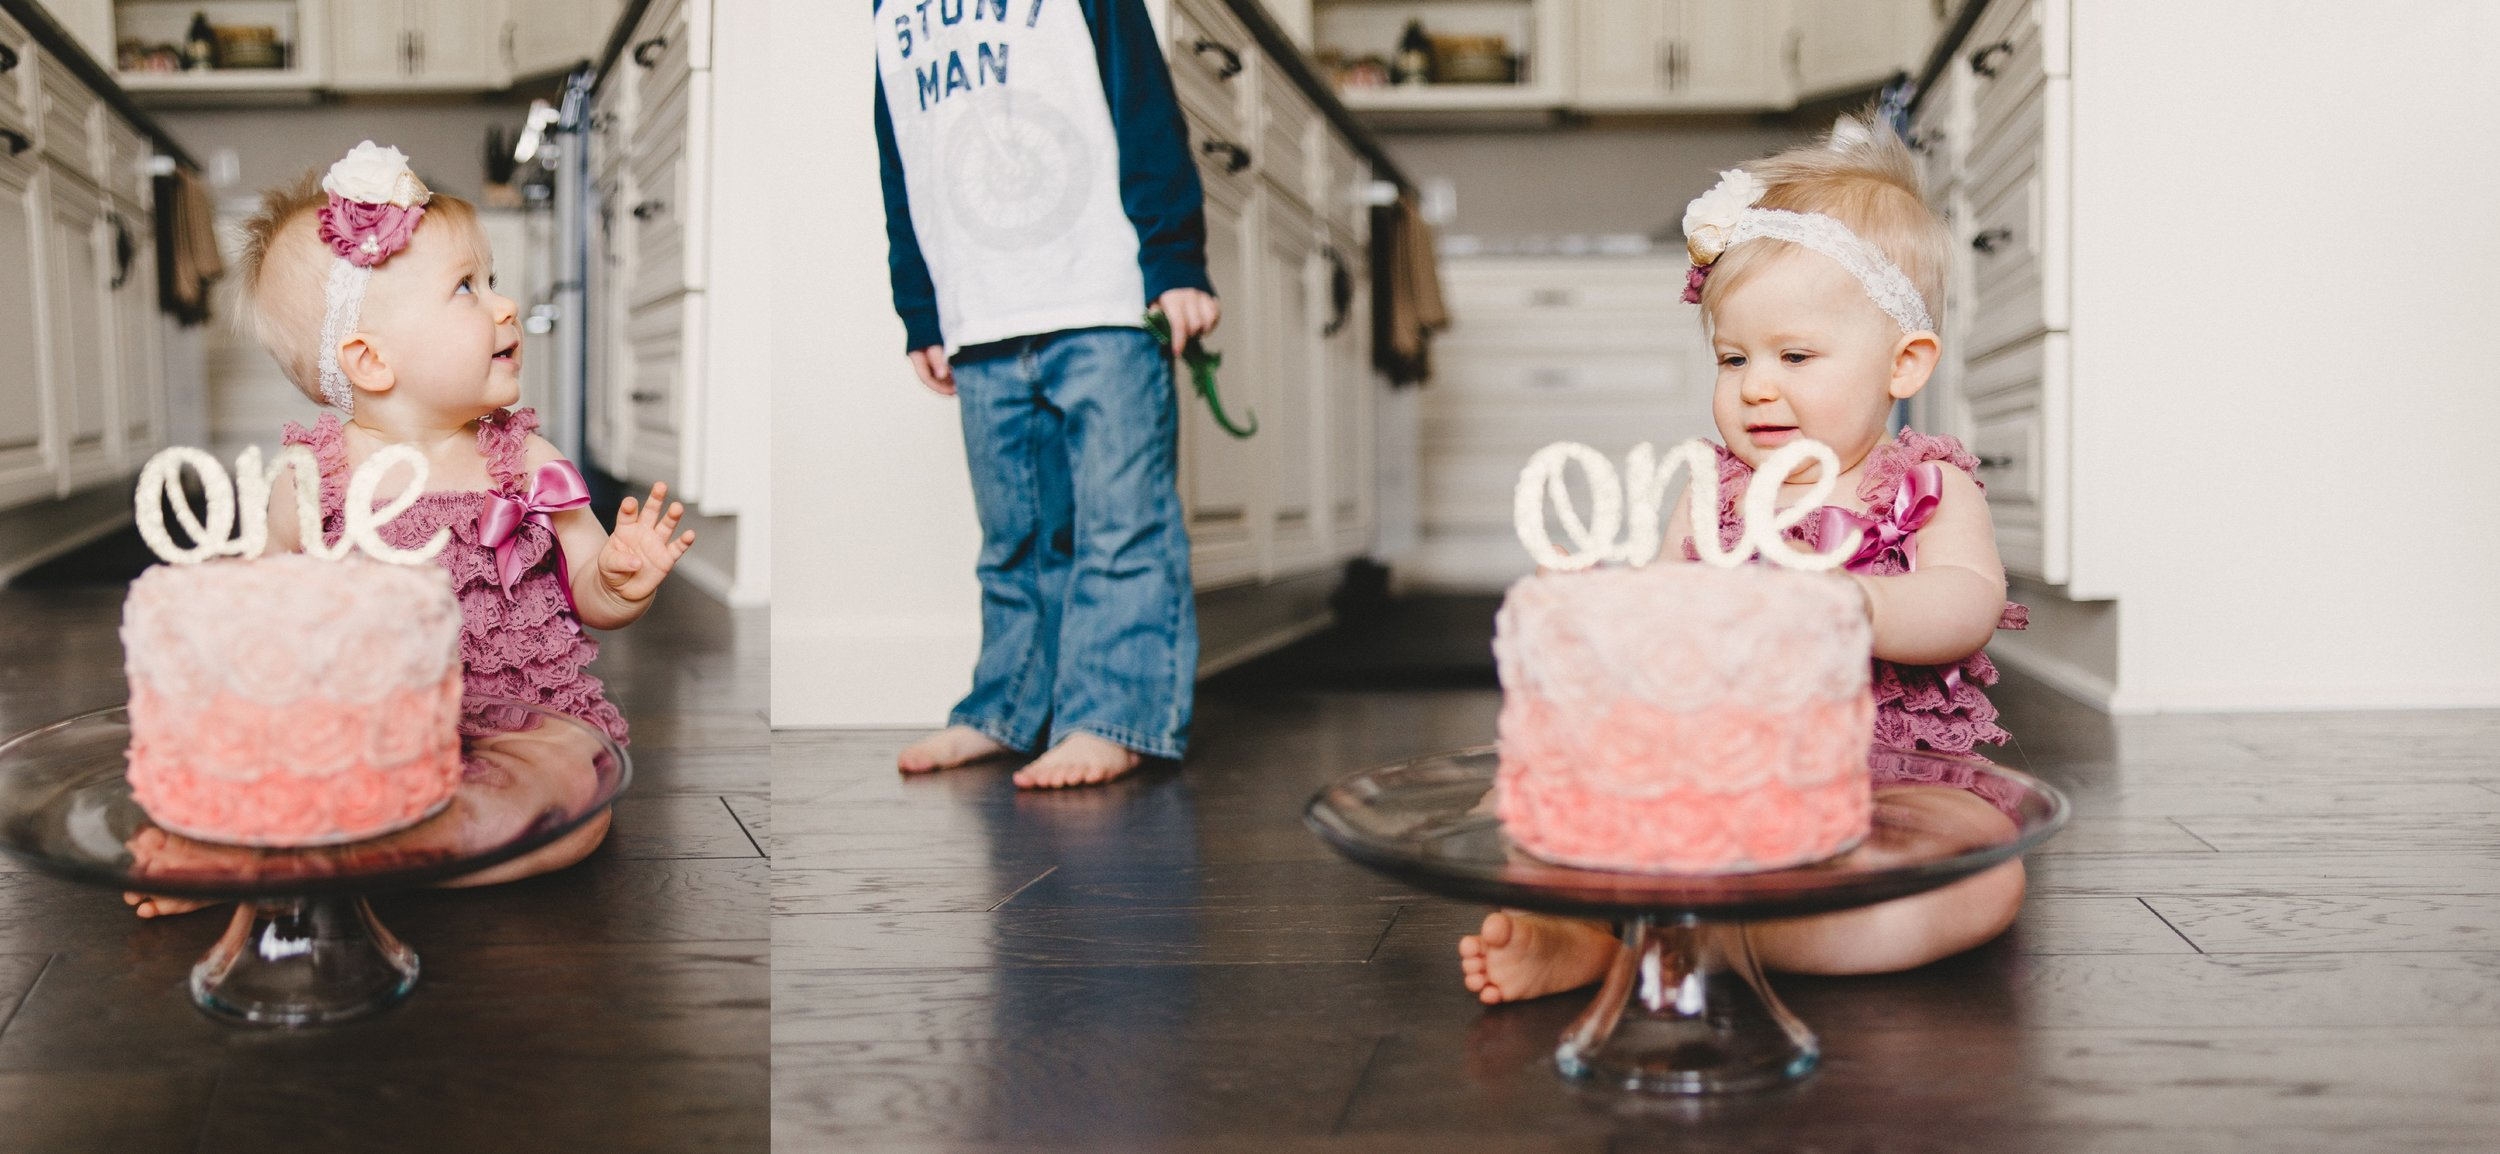 Michigan Family Photographer First Birthday Cakesmash Lifestyle Black and White Indoors (13).jpg